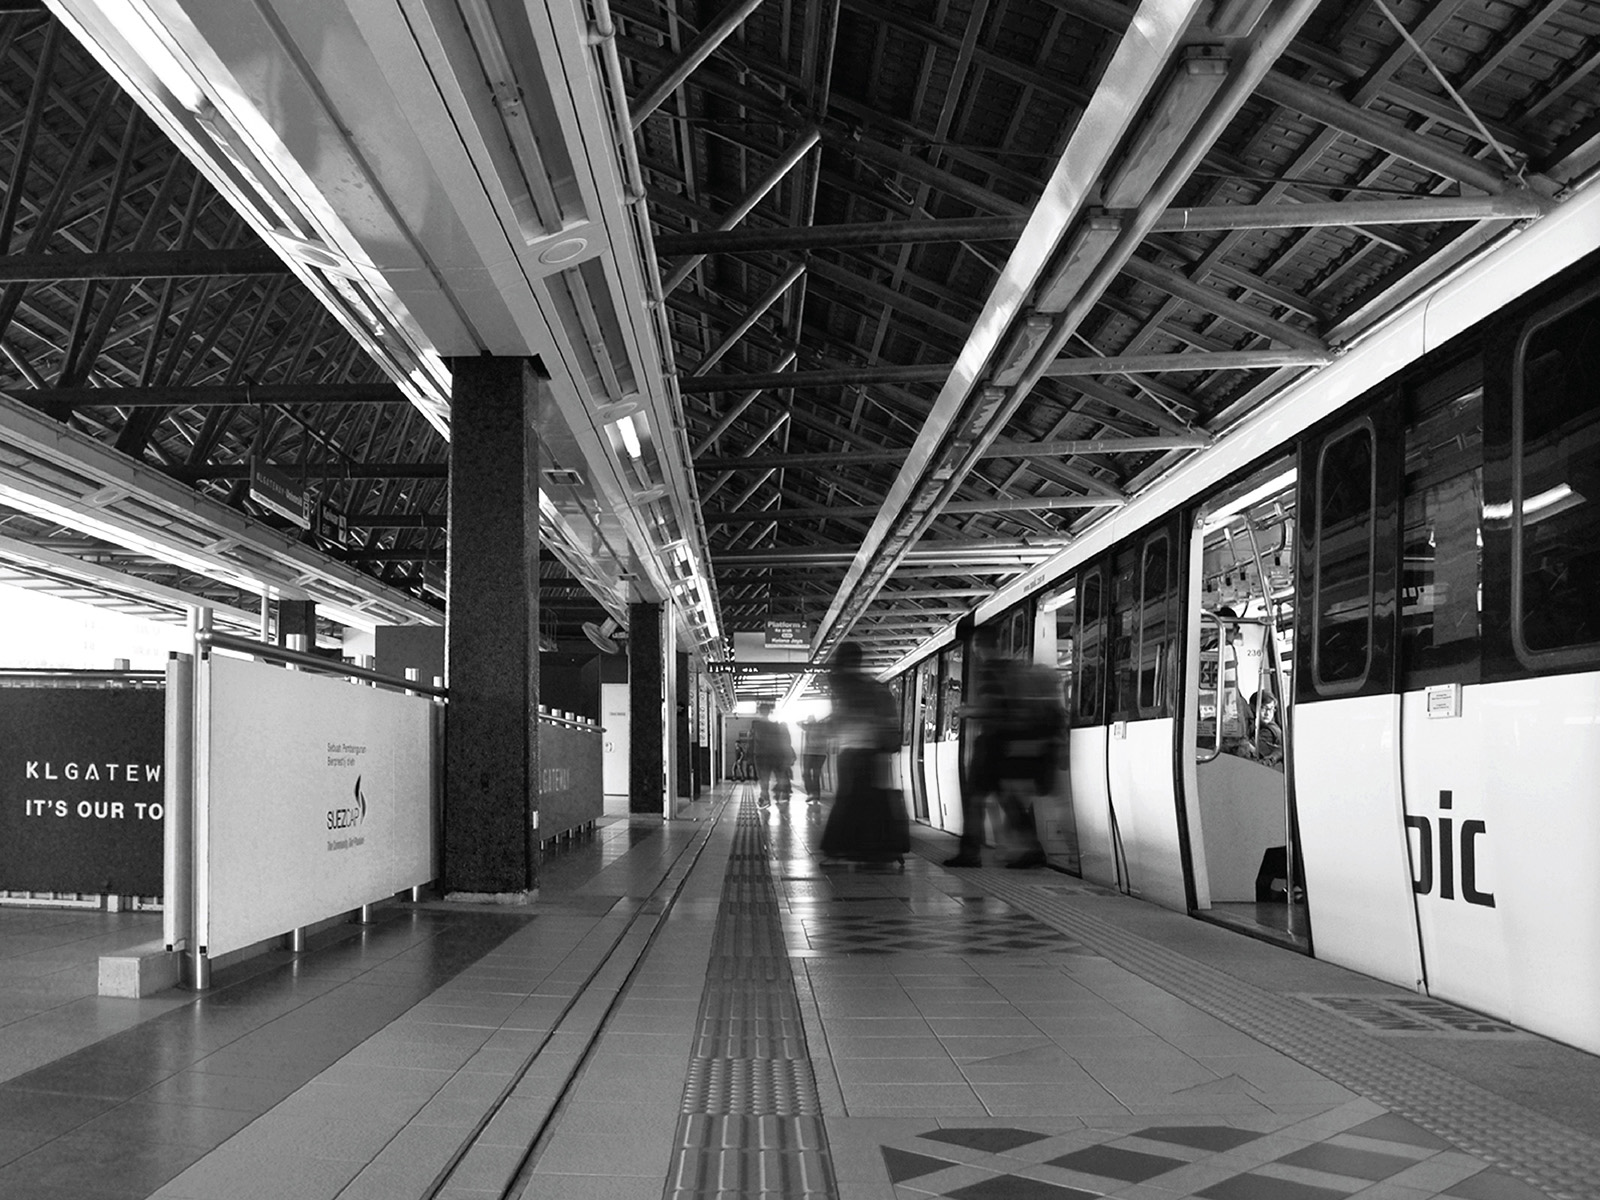 KL Gateway by Suezcap train station brand advertisement takeover on handrail panels with a stopped train that is allowing people to disembark in black and white visual